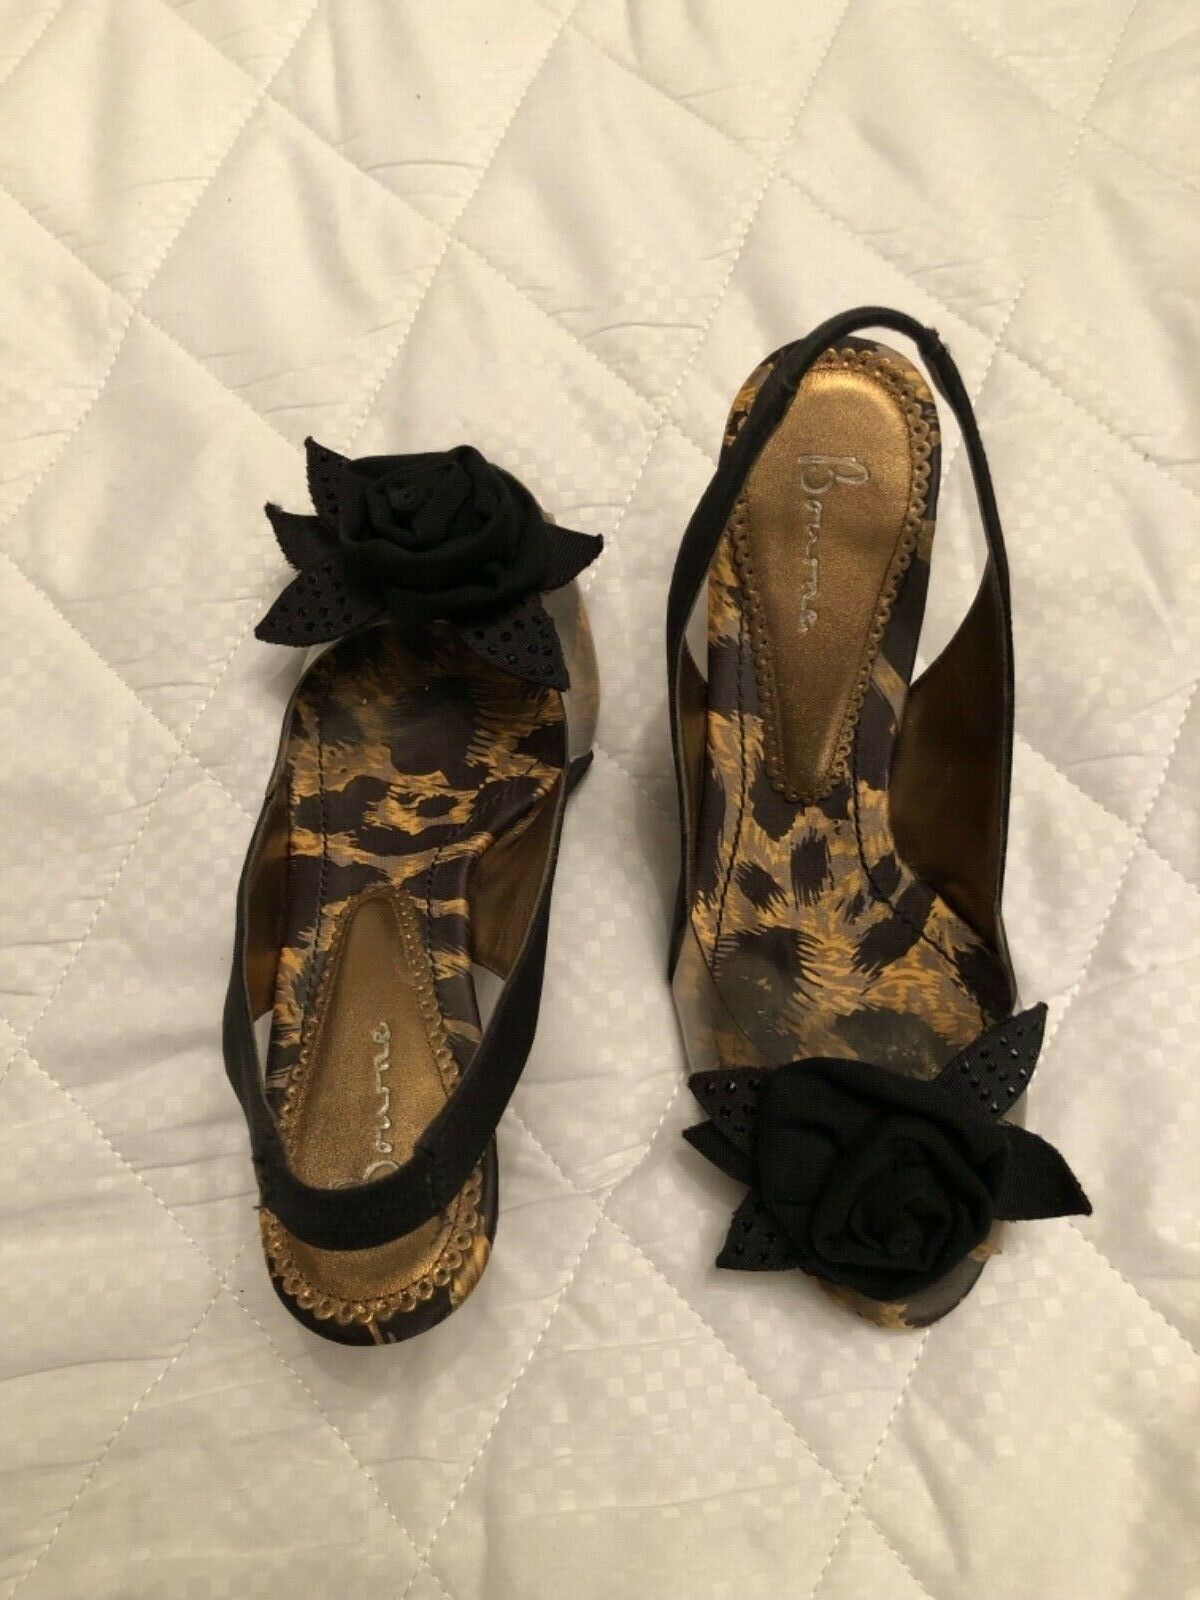 BOURNE Leopard Print Transparent shoes platform 8cm Size EU37 UK 4